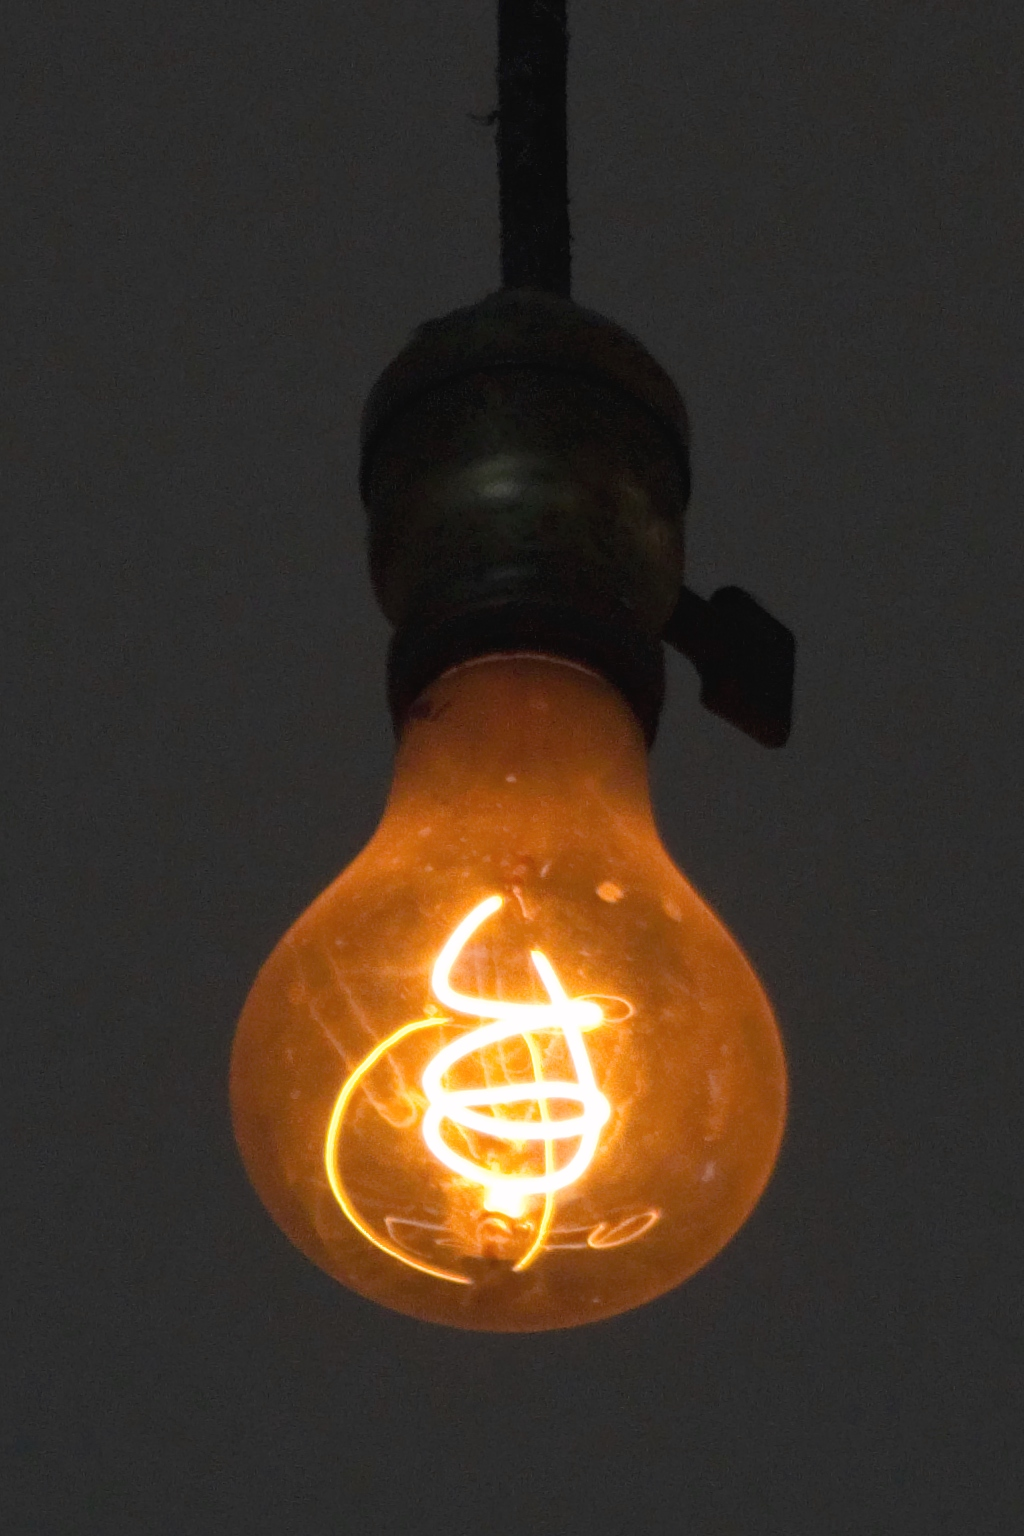 Incandescent light bulb wikipedia the centennial light is the longest lasting light bulb in the world biocorpaavc